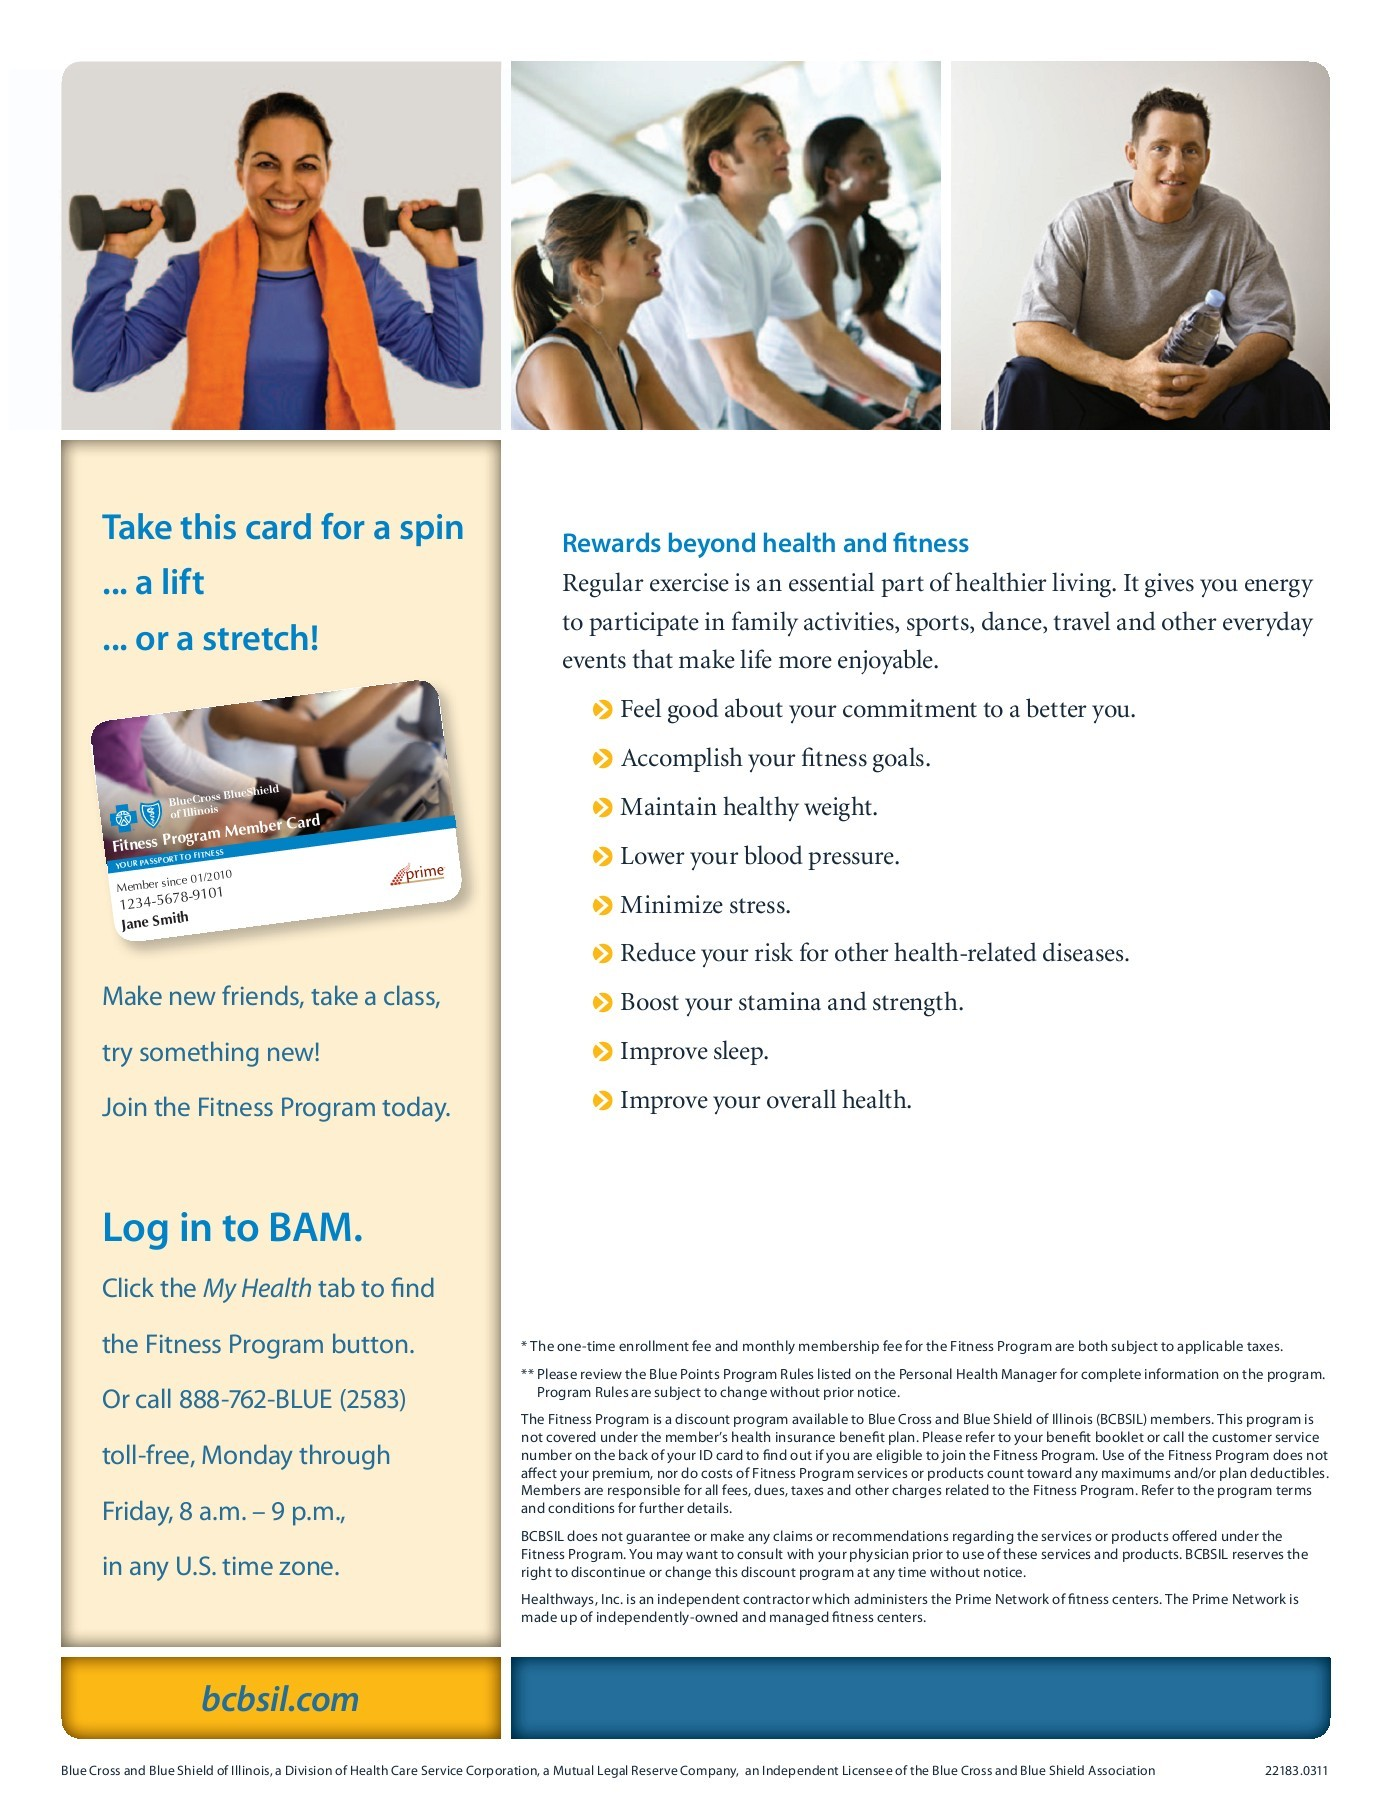 Bcbsil Fitness Program Participating Fitness Centers ...